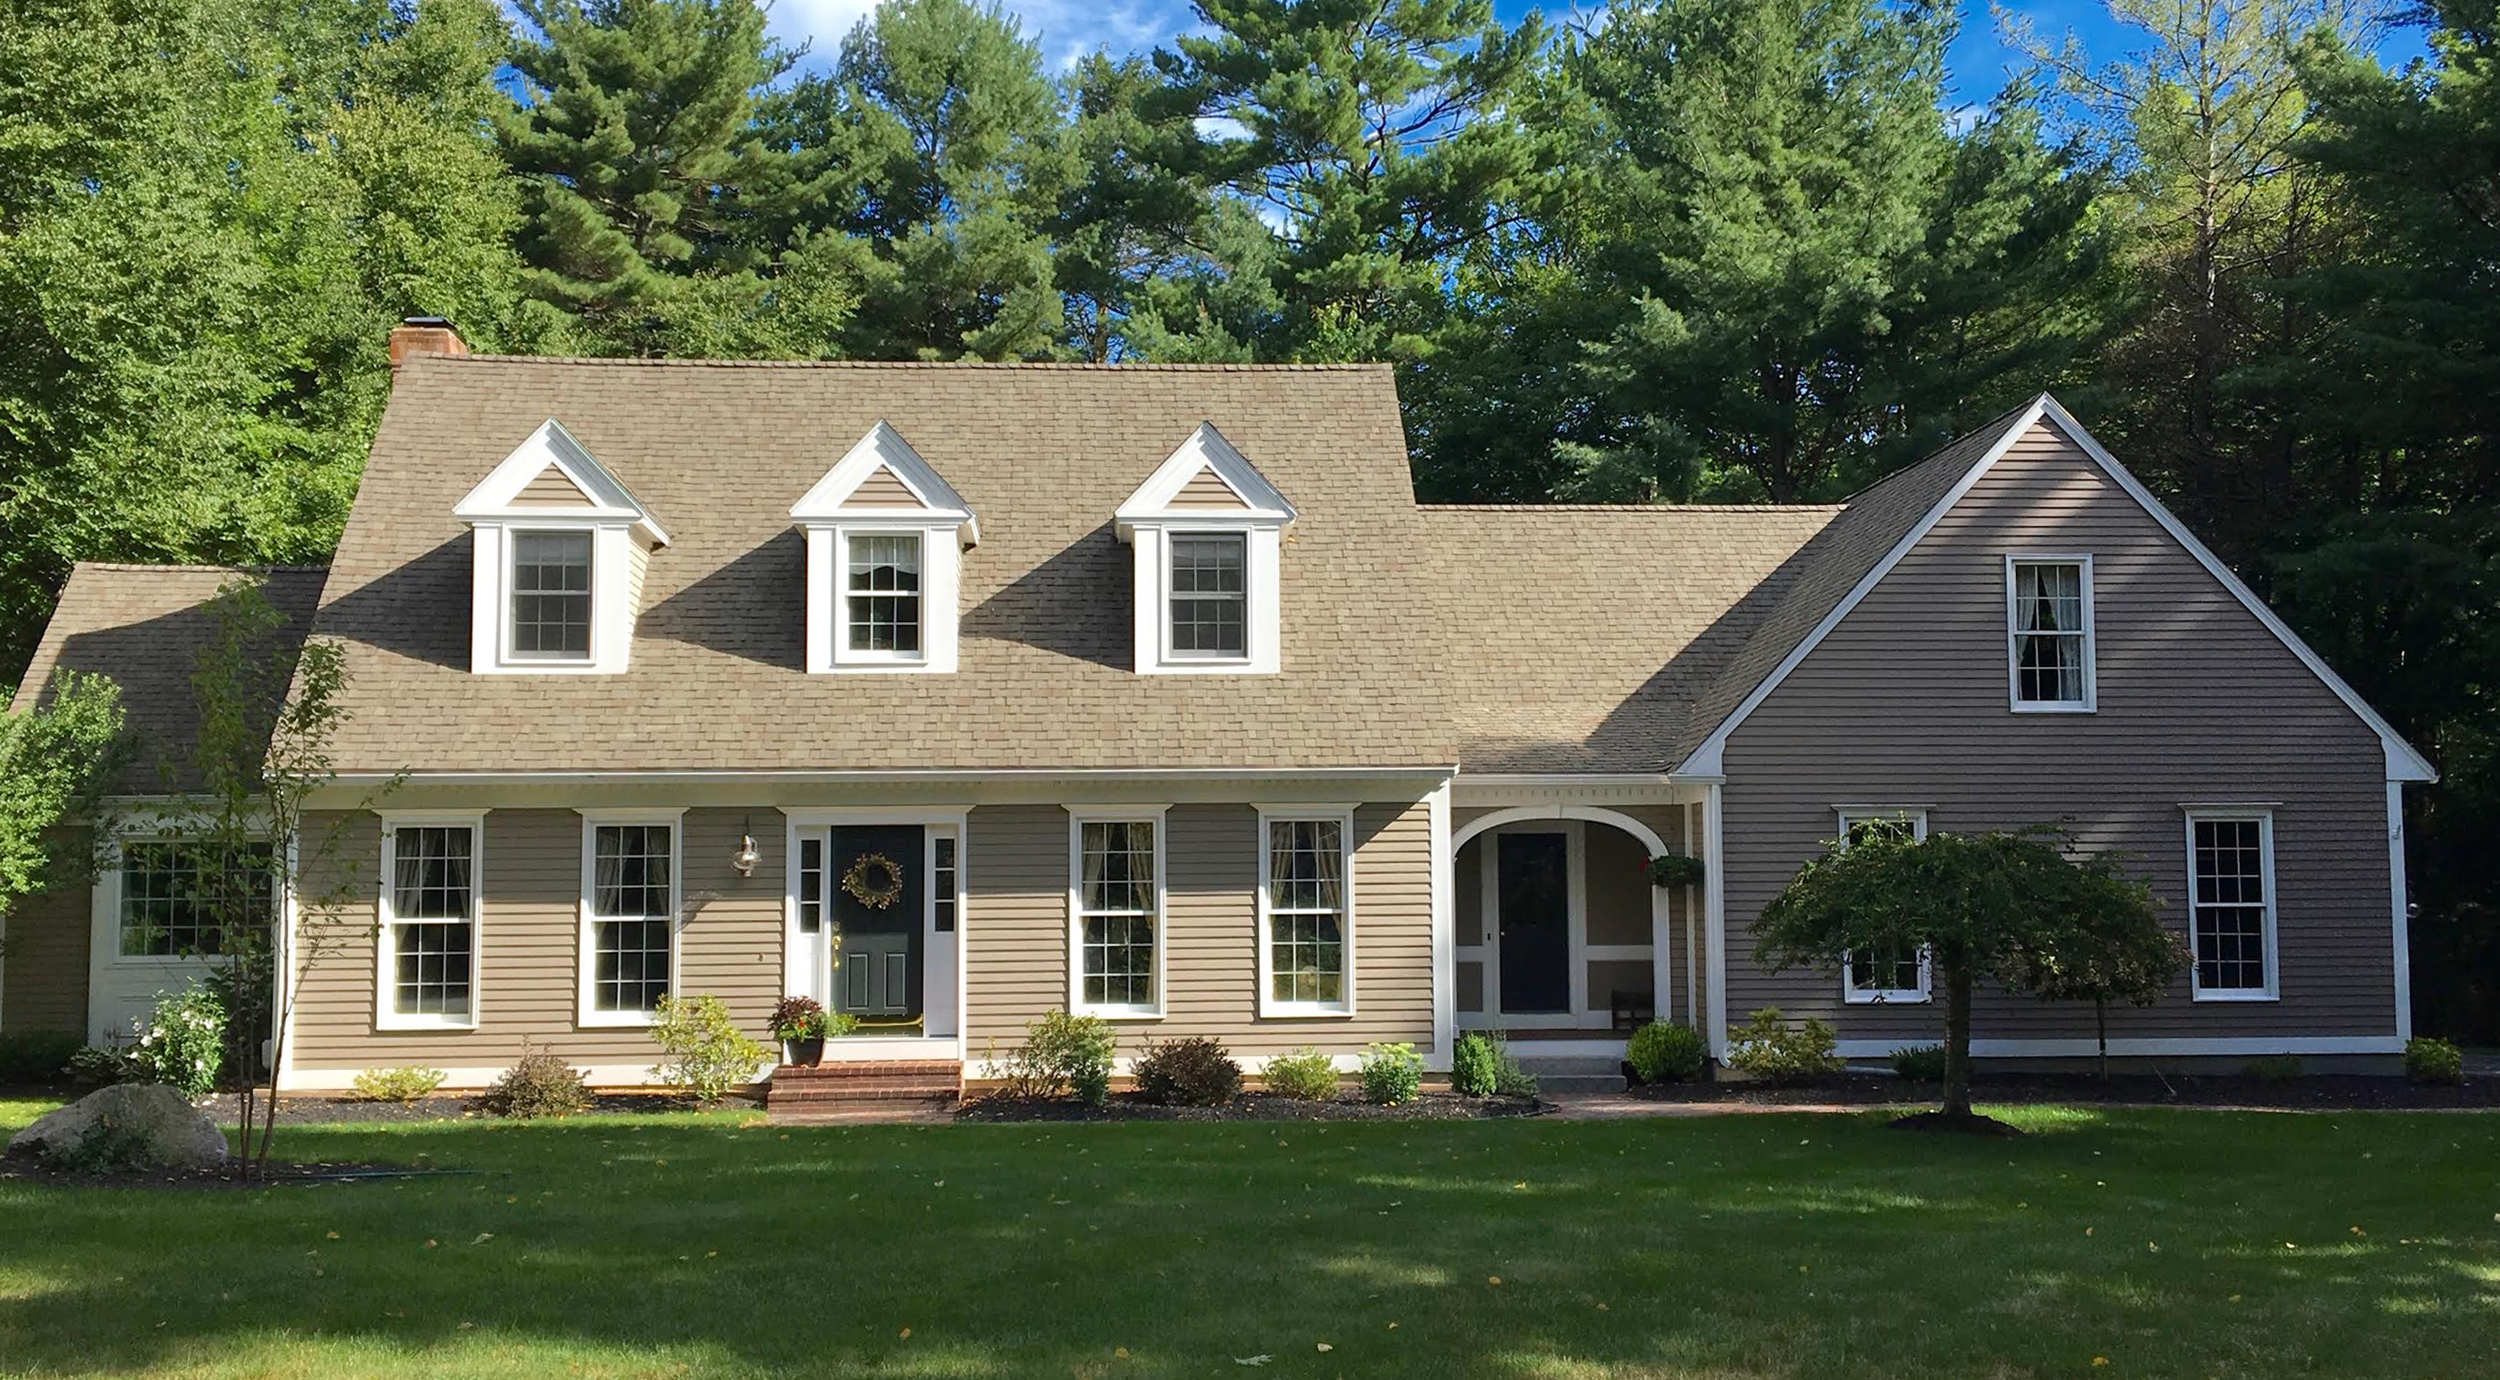 Classic New England cape with dormers and fresh paint